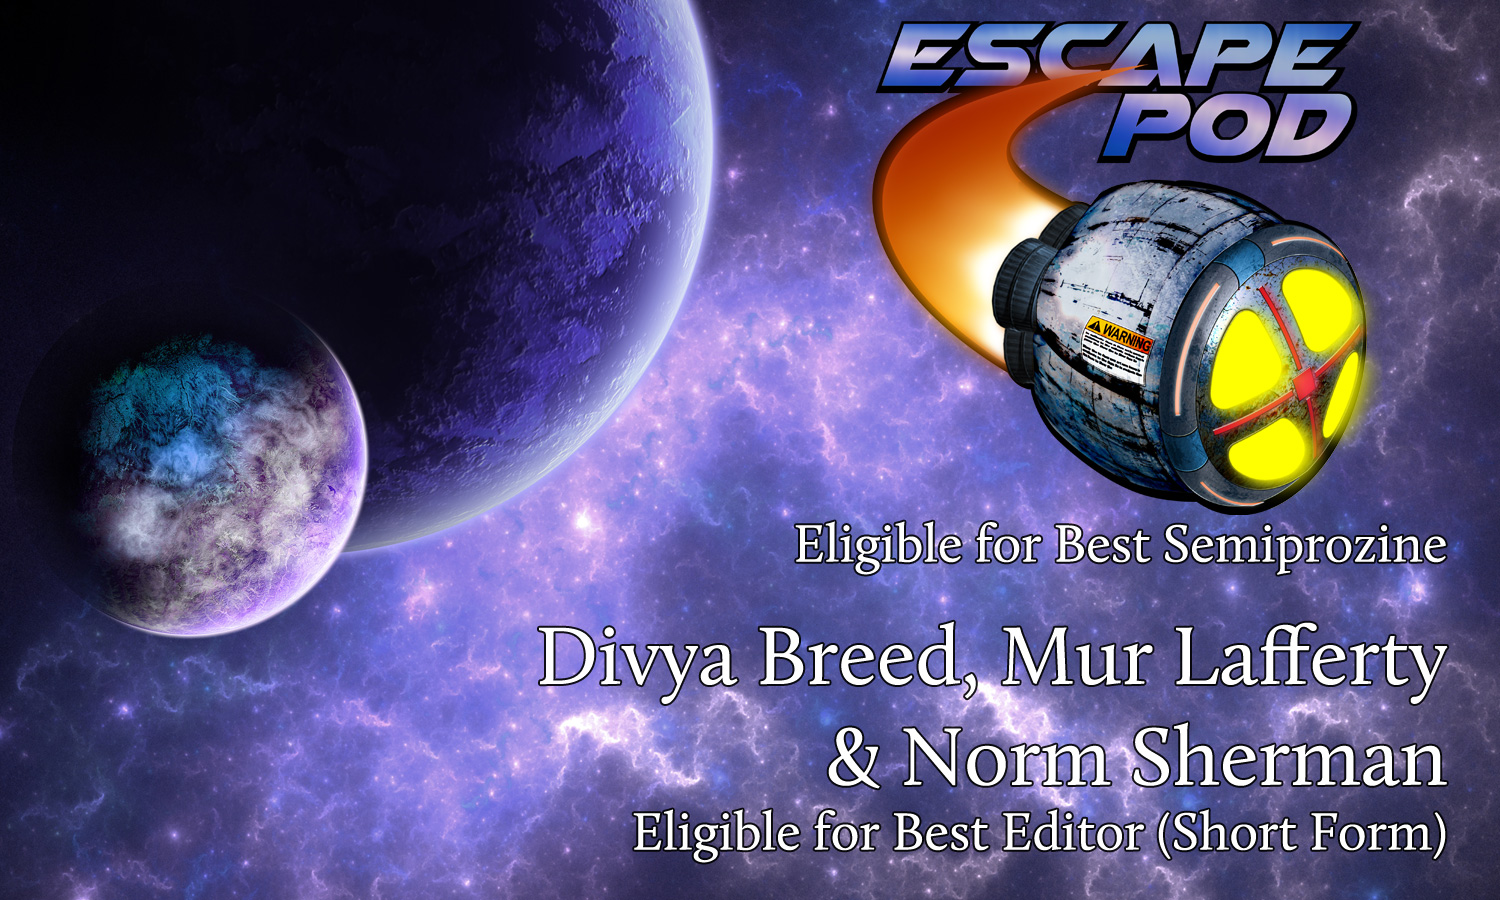 Escape Pod 2018 award eligibility